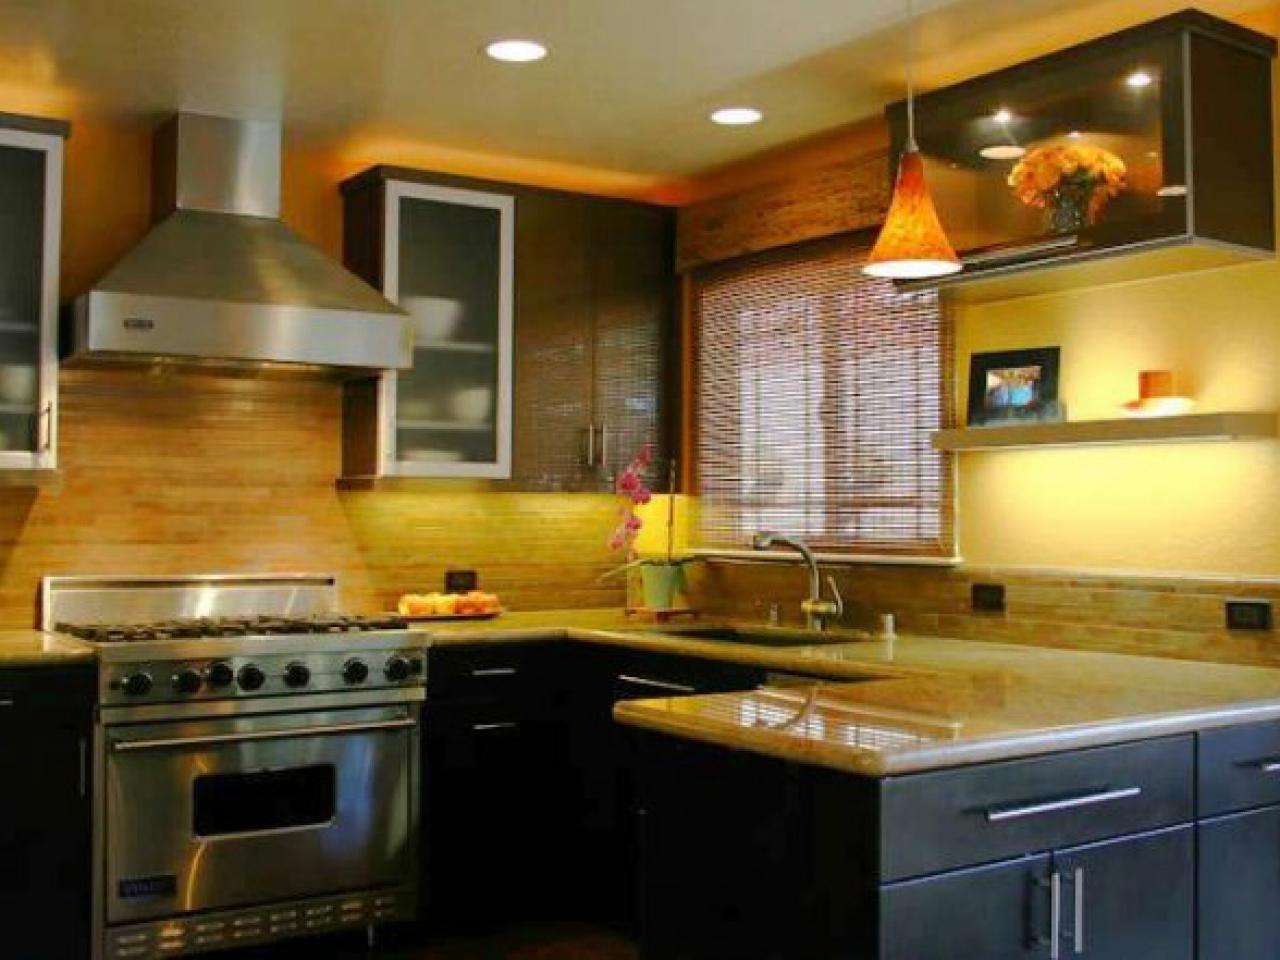 4 Eco Friendly Kitchen Upgrades My Green Home Blog